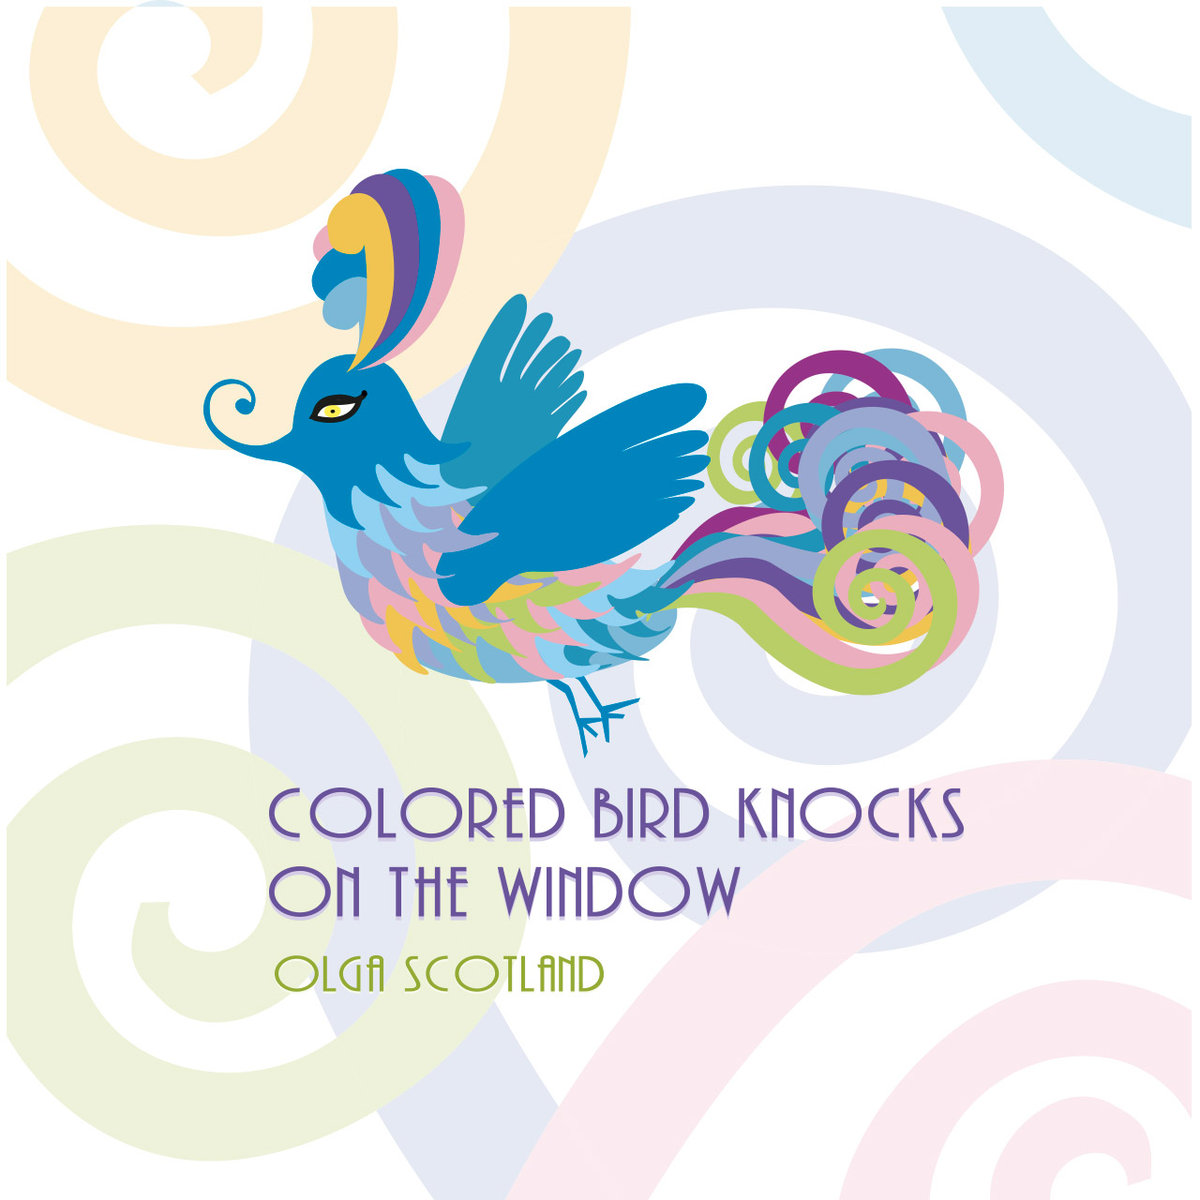 Olga Scotland - Colored Bird Knocks On The Window @ 'Colored Bird Knocks On The Window' album (soundtrack, ambient)